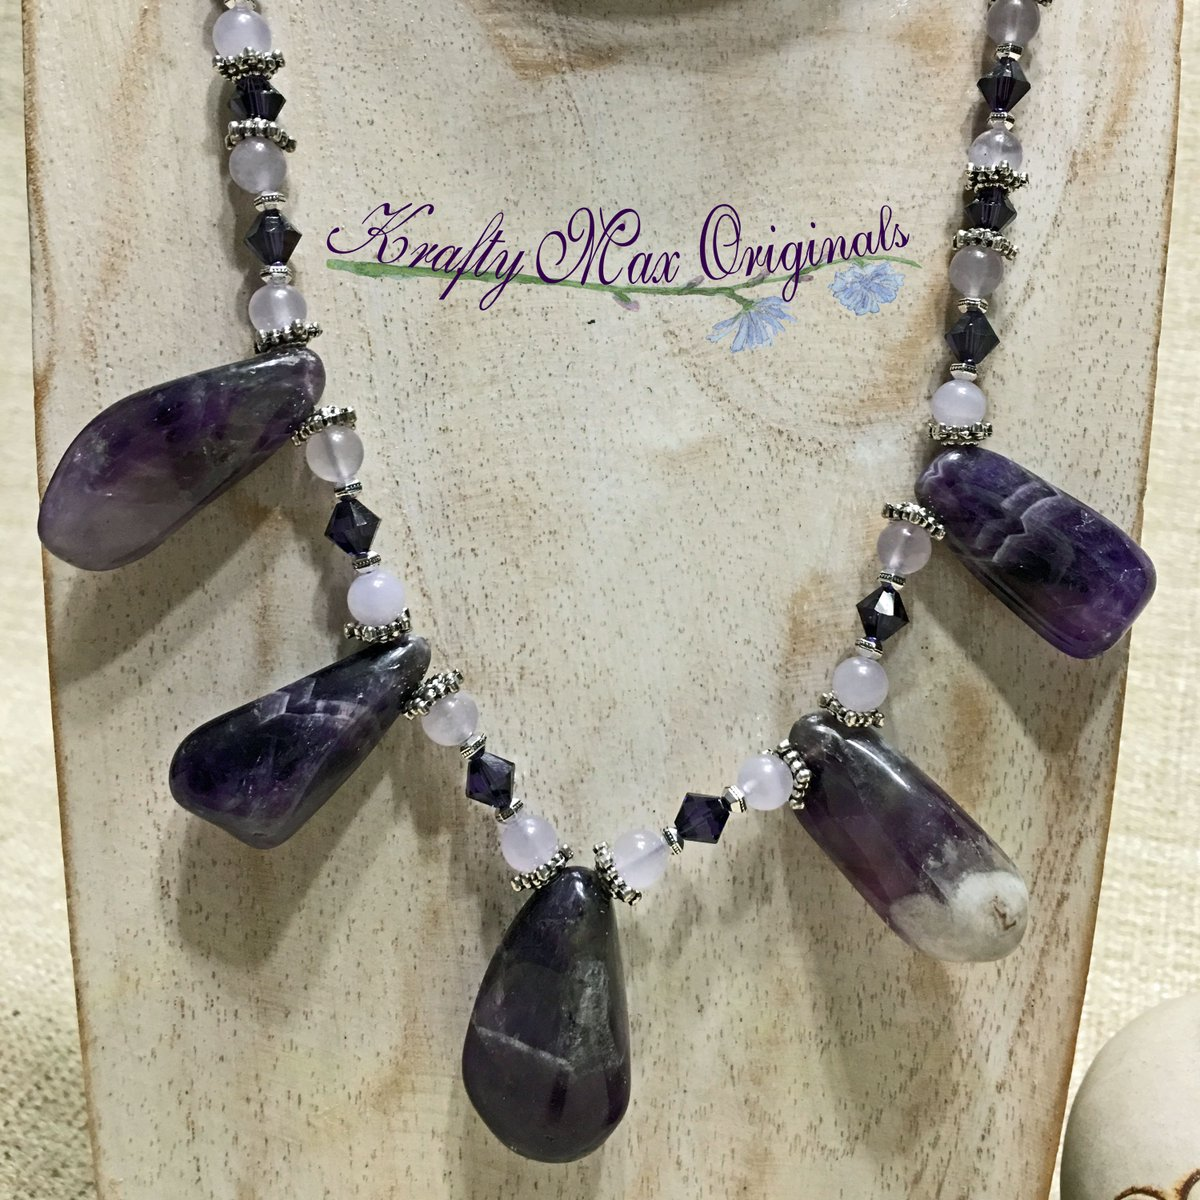 Amethyst Drops with Swarovski Crystals and Quartz Necklace Set (discounted from $51 down to $24)  #handmade #jewelry #buyhandmade #handmadelove #handcrafted #kraftymax #kmax #discount #sale #bargain #save #clearance